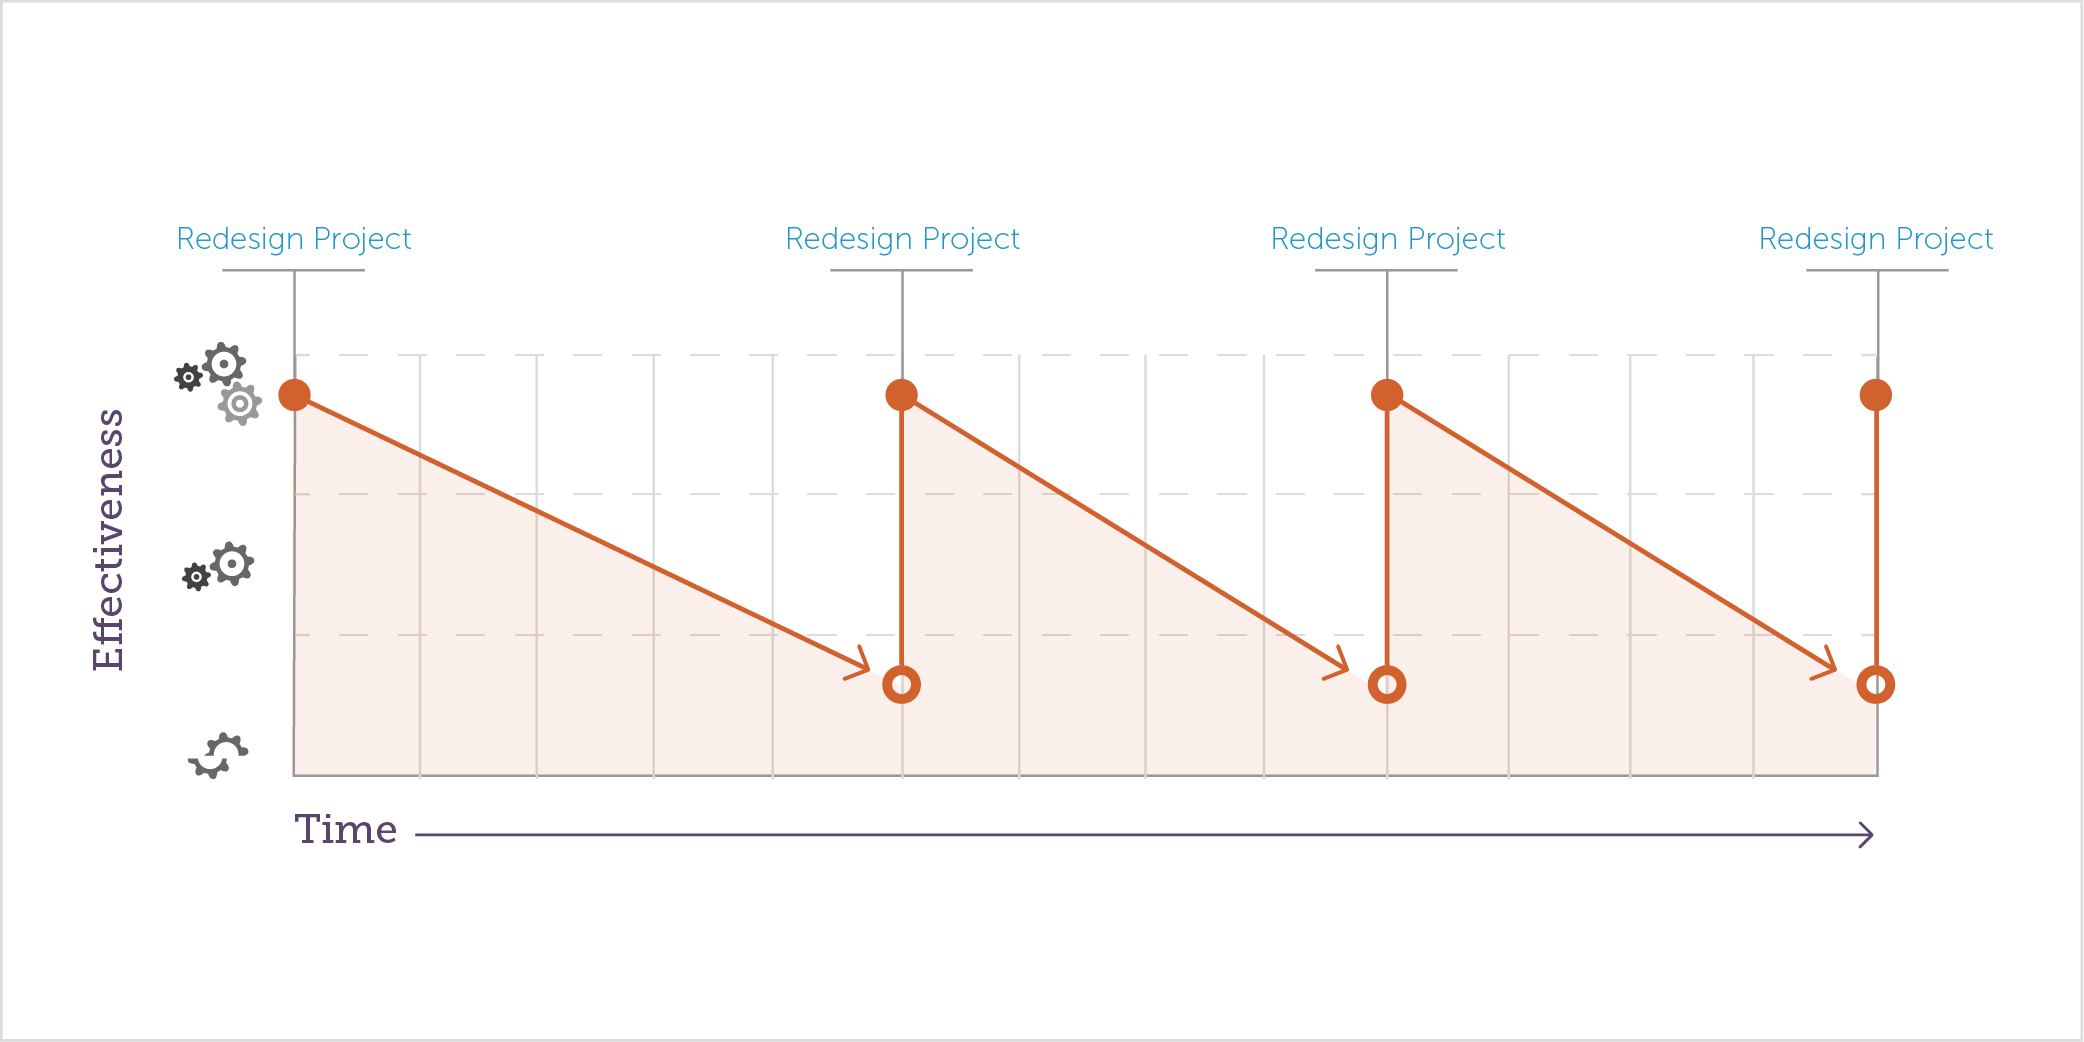 Line chart shows cyclical decrease in effectiveness over time after a website redesign project